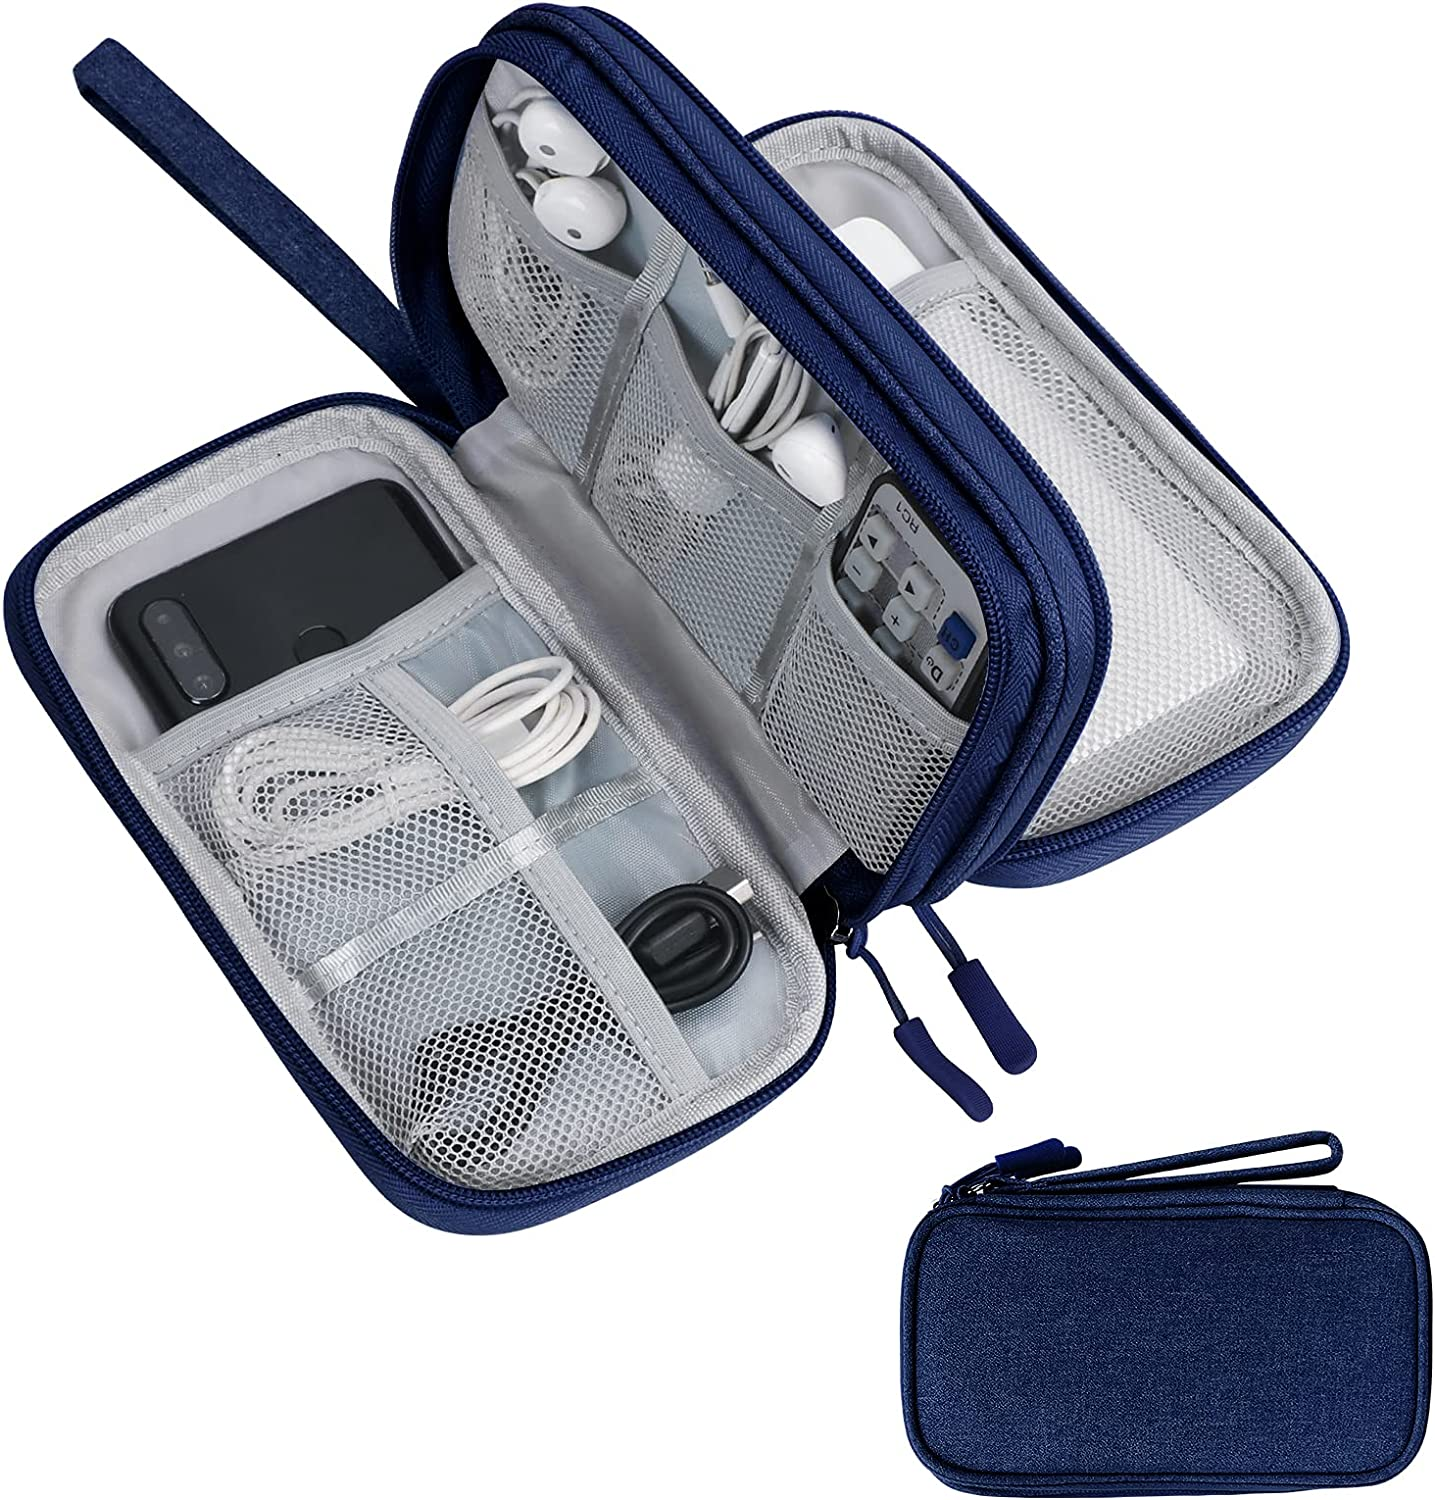 Skycase Travel Cable Organizer,Electronics Accessories Cases, All-in-One Storage Bag,Accessories Carry Bag for USB Data Cable,Earphone Wire,Power Bank, Phone,Navy